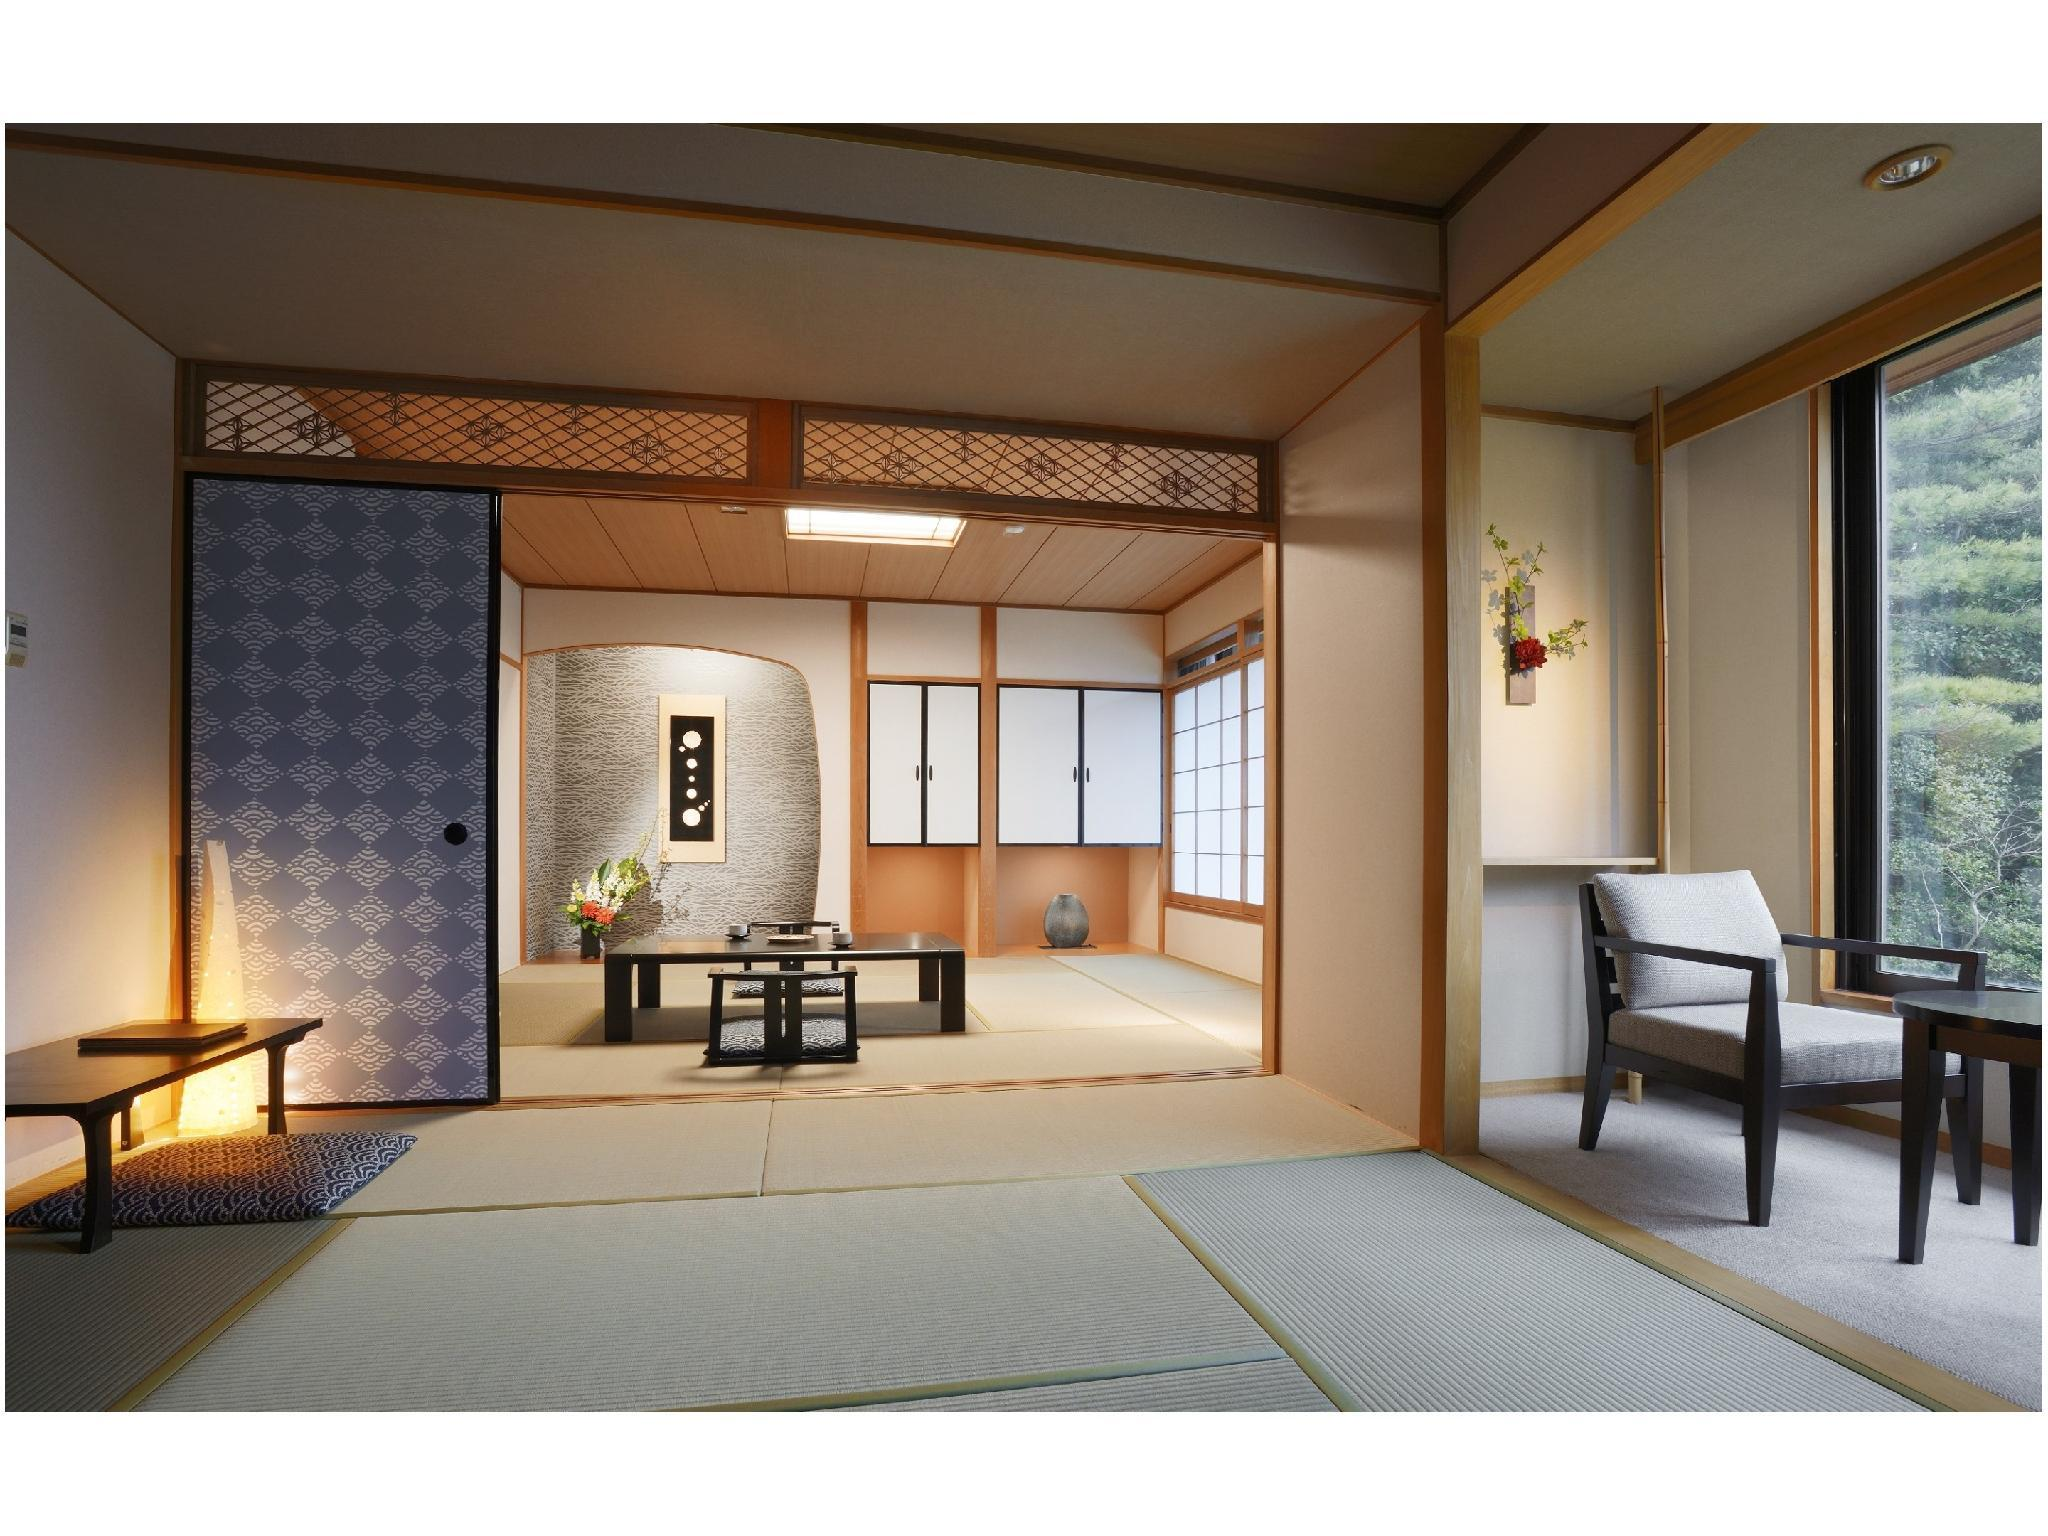 The Katagami Japanese-style Room